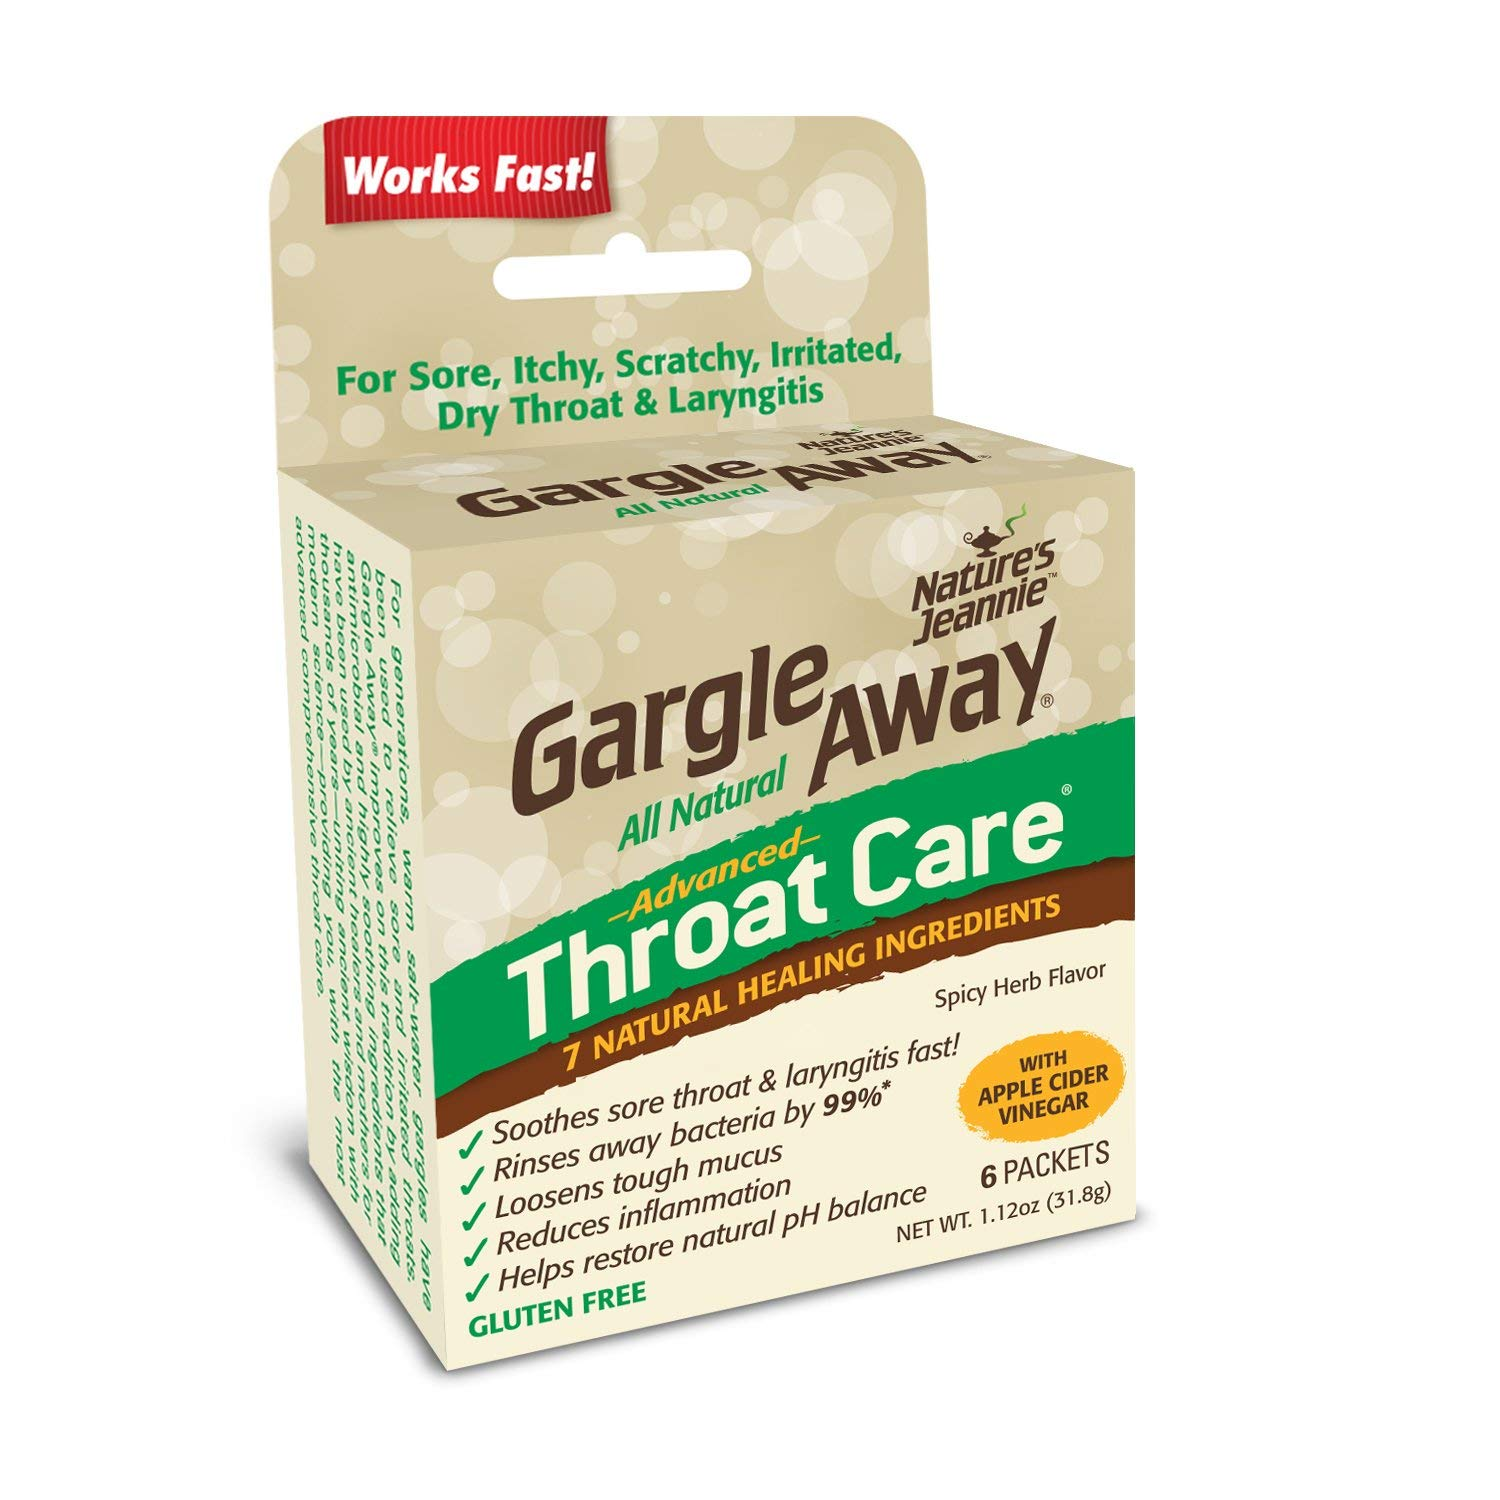 Gargle Away by Nature's Jeannie - Natural Sore Throat Remedy, Vocal Care, Mucus Relief, Cough Suppressant for Adults (6-Pack, Powder)